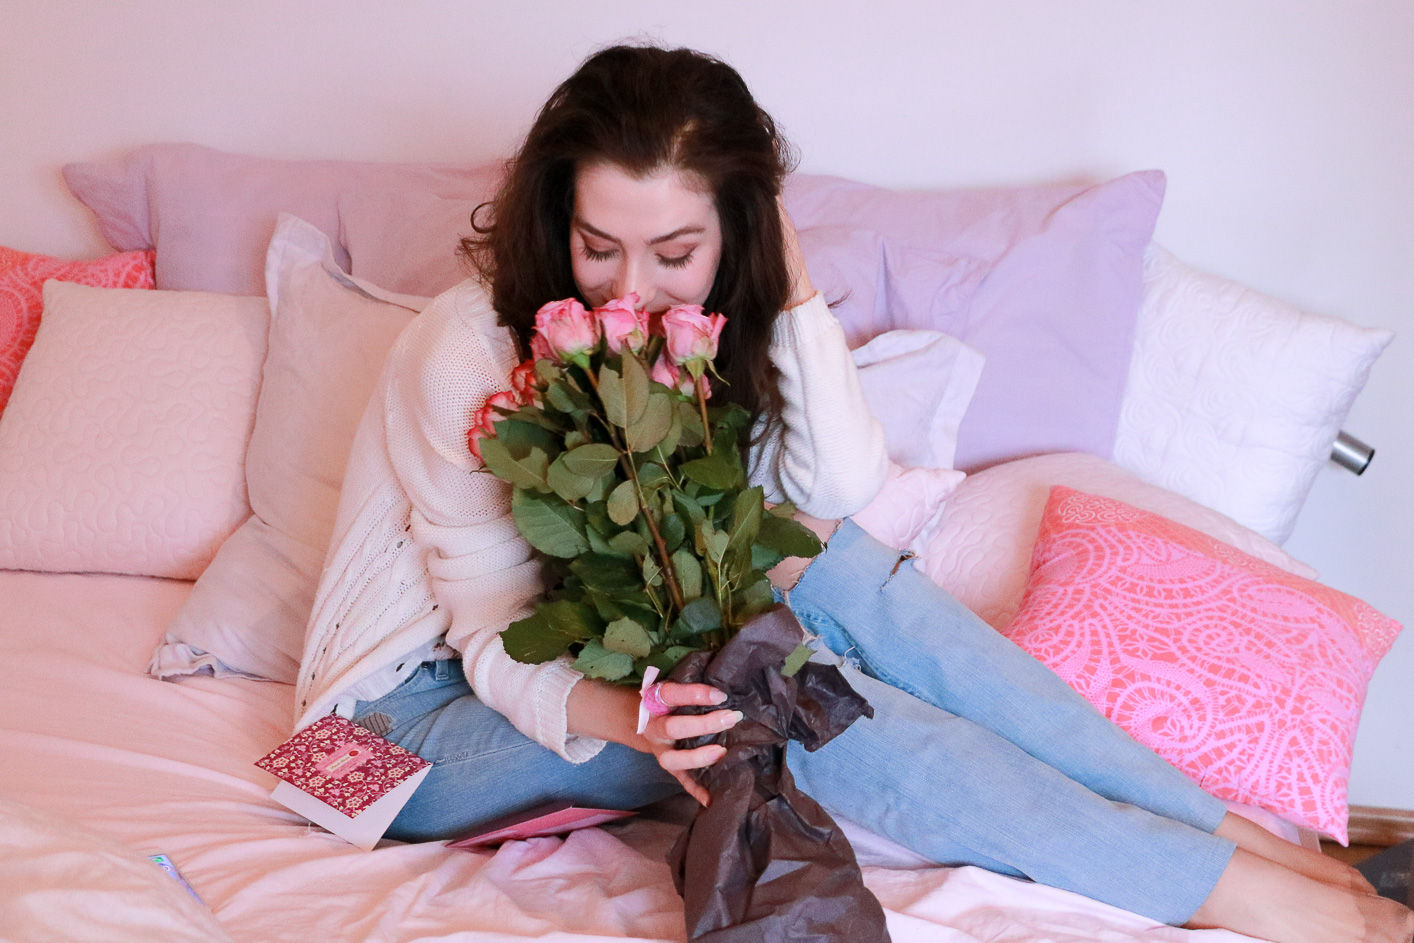 Fashion blogger Veronika Lipar of Brunette From Wall Street sharing best ideas on how to spend the Valentine's Day if you are single